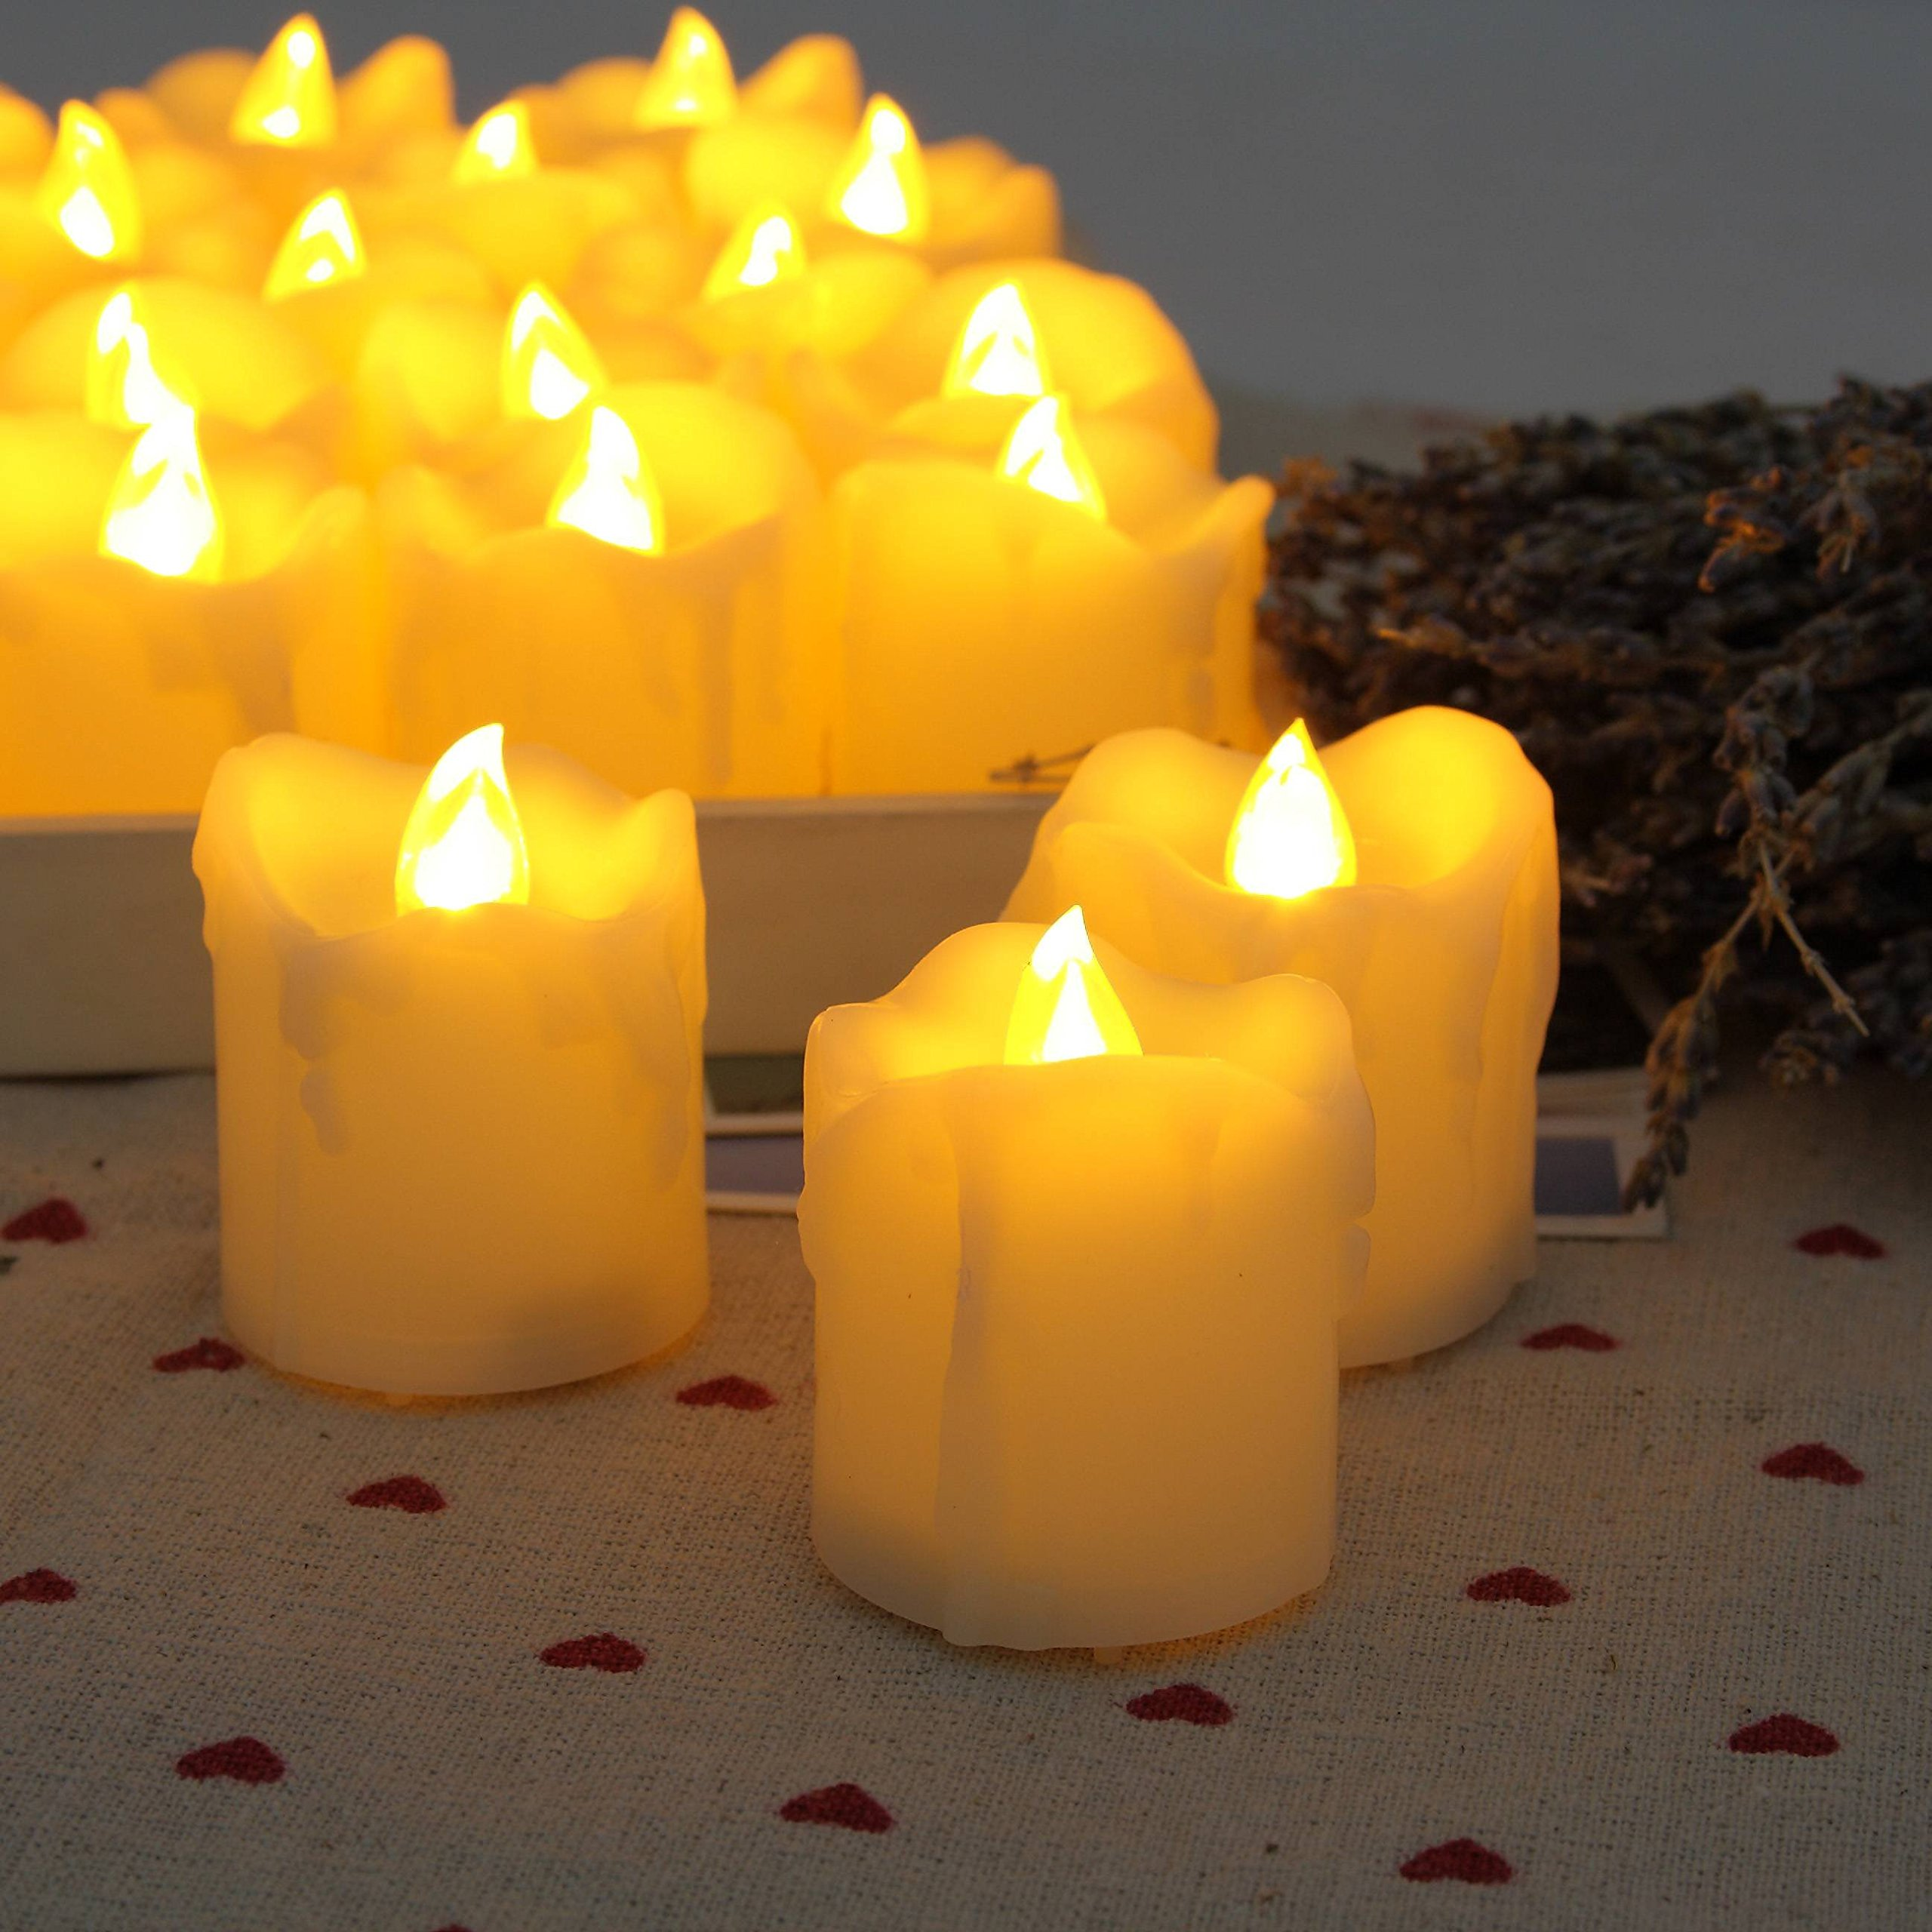 "Any-door 12-PACK Flameless LED Votive Candles Drips Timer Battery Included 2.0""X1.5"""